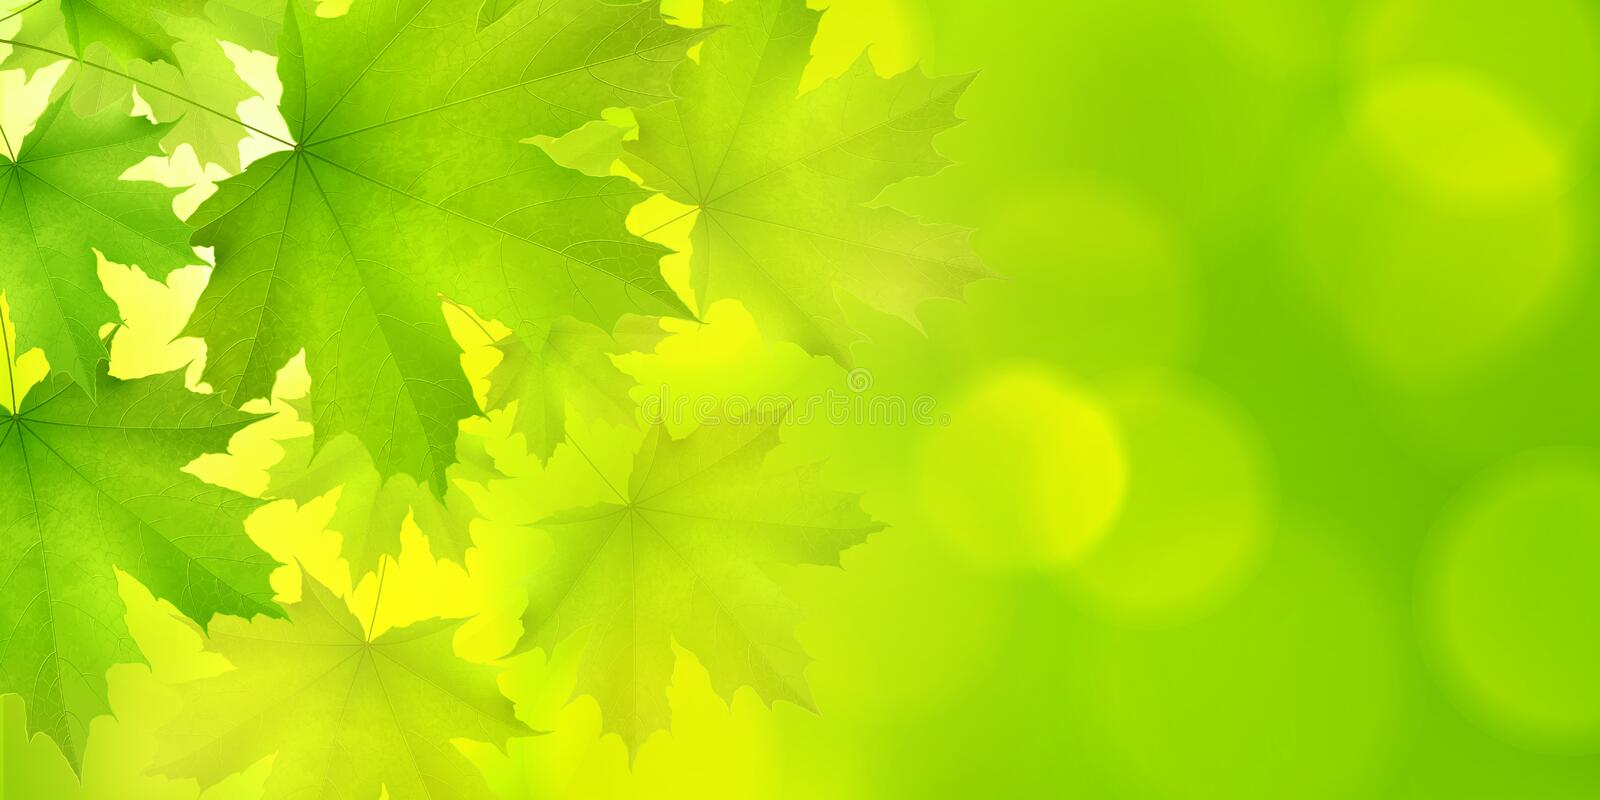 Natural green horizontal rectangular background with maple leaves and tree branches. Vector summer spring background stock illustration